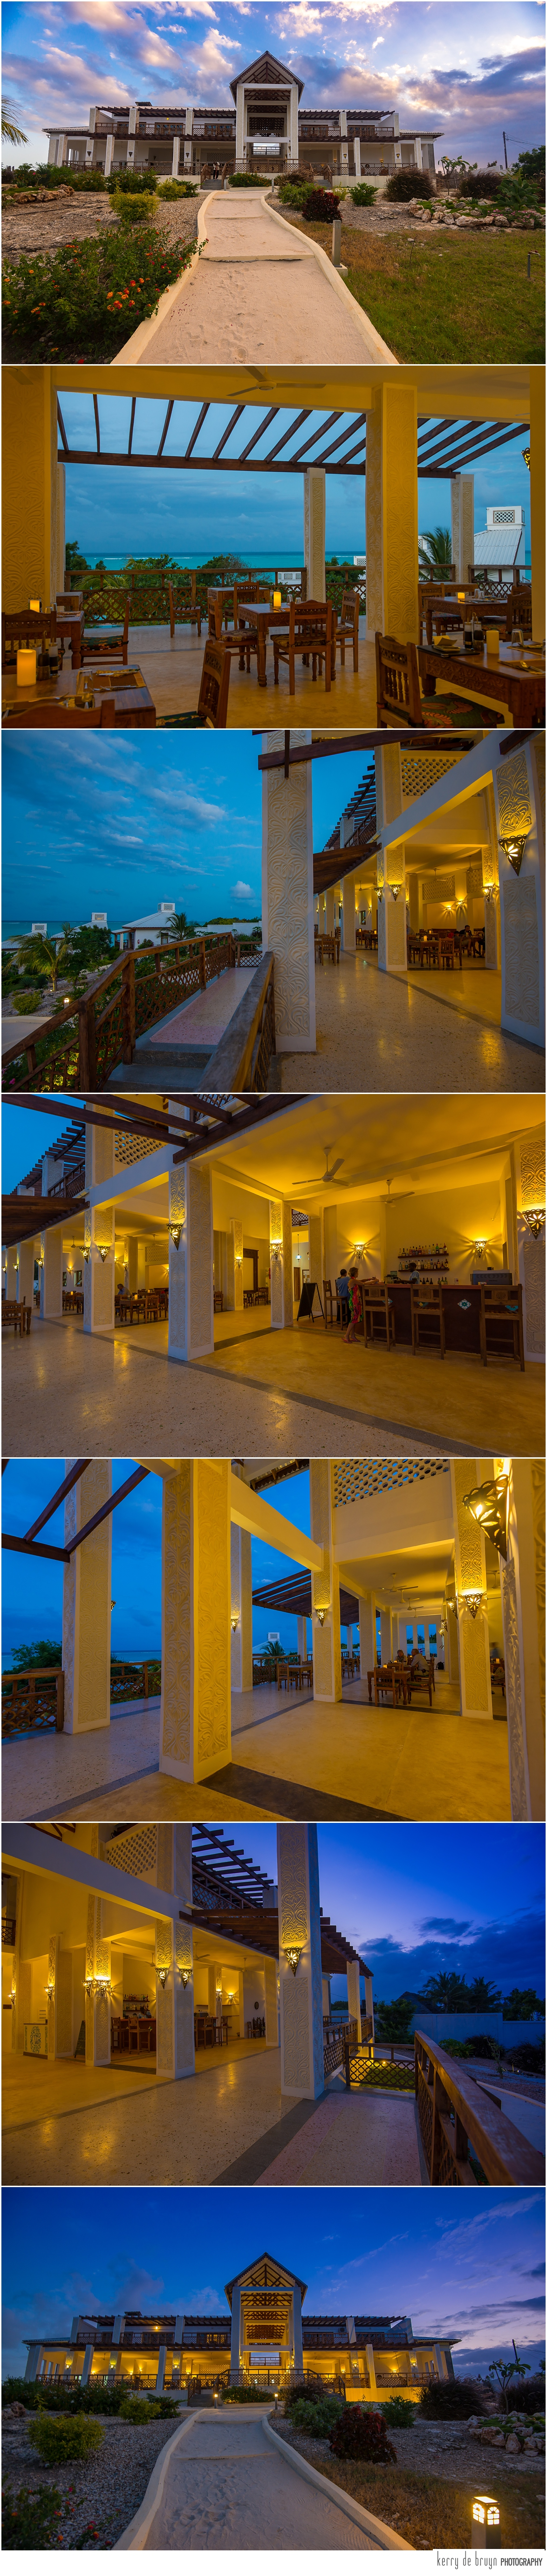 Lodge and Zanzibar hotel photographer